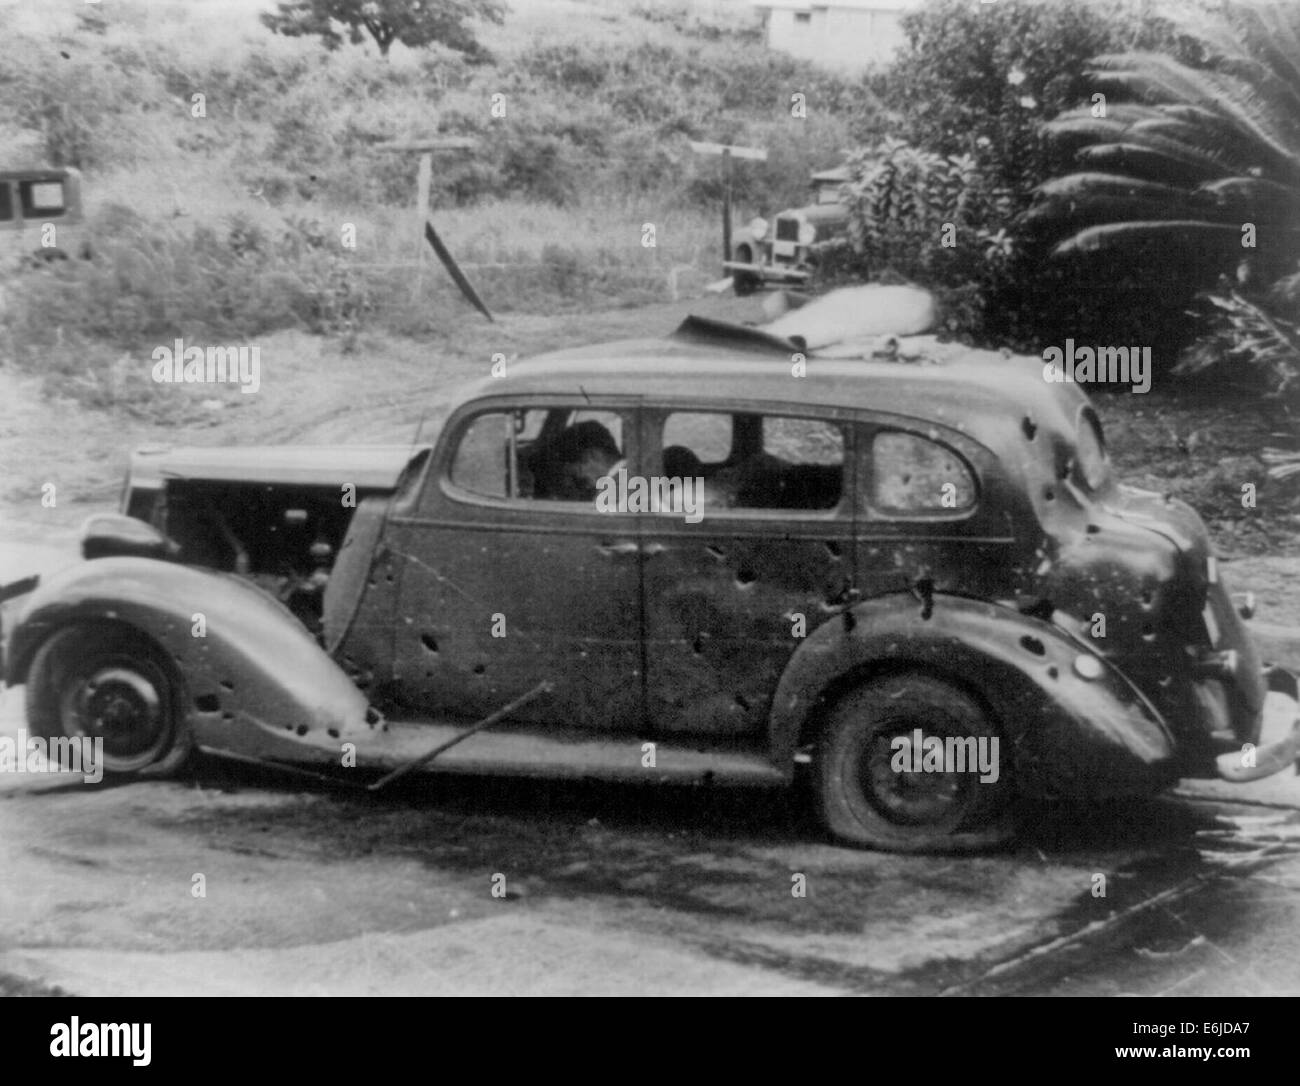 Car with dead driver at wheel - Pearl Harbor attack - December 7, 1941 Stock Photo